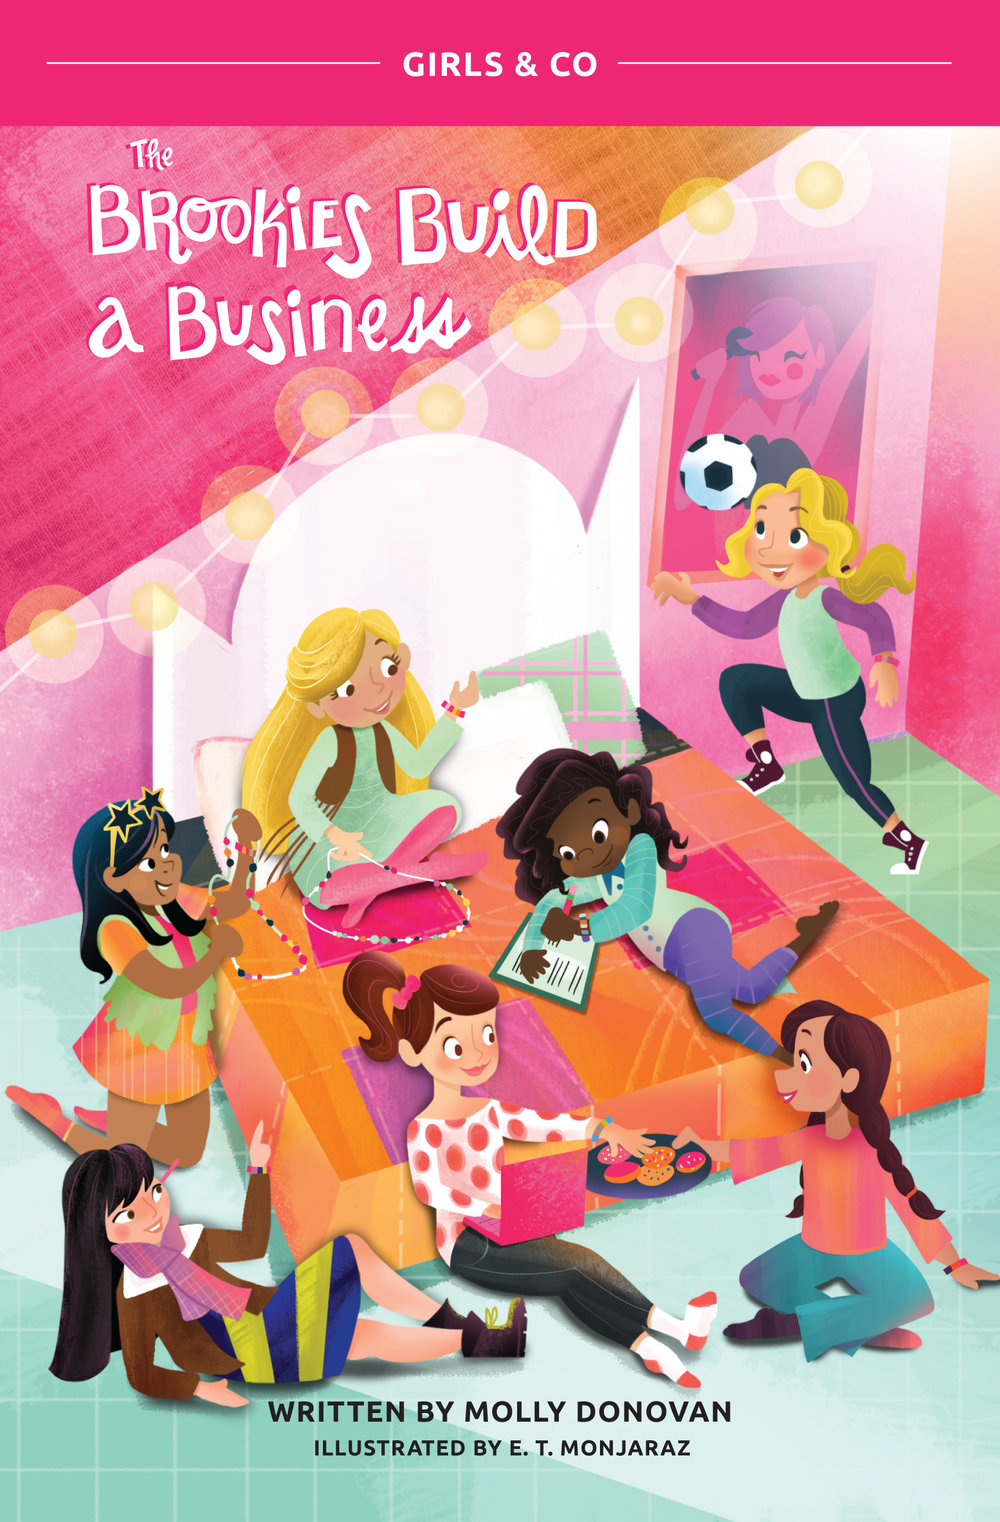 Book 1: Cara's Story - Cara Morales-Burch and her six best friends are smart, driven, and caring fifth-graders. When a fun sleepover activity turns into an idea for a business, they dive right in! This is the story of how the girls of Willowbrook Elementary worked together to build a socially conscious business with an important mission.